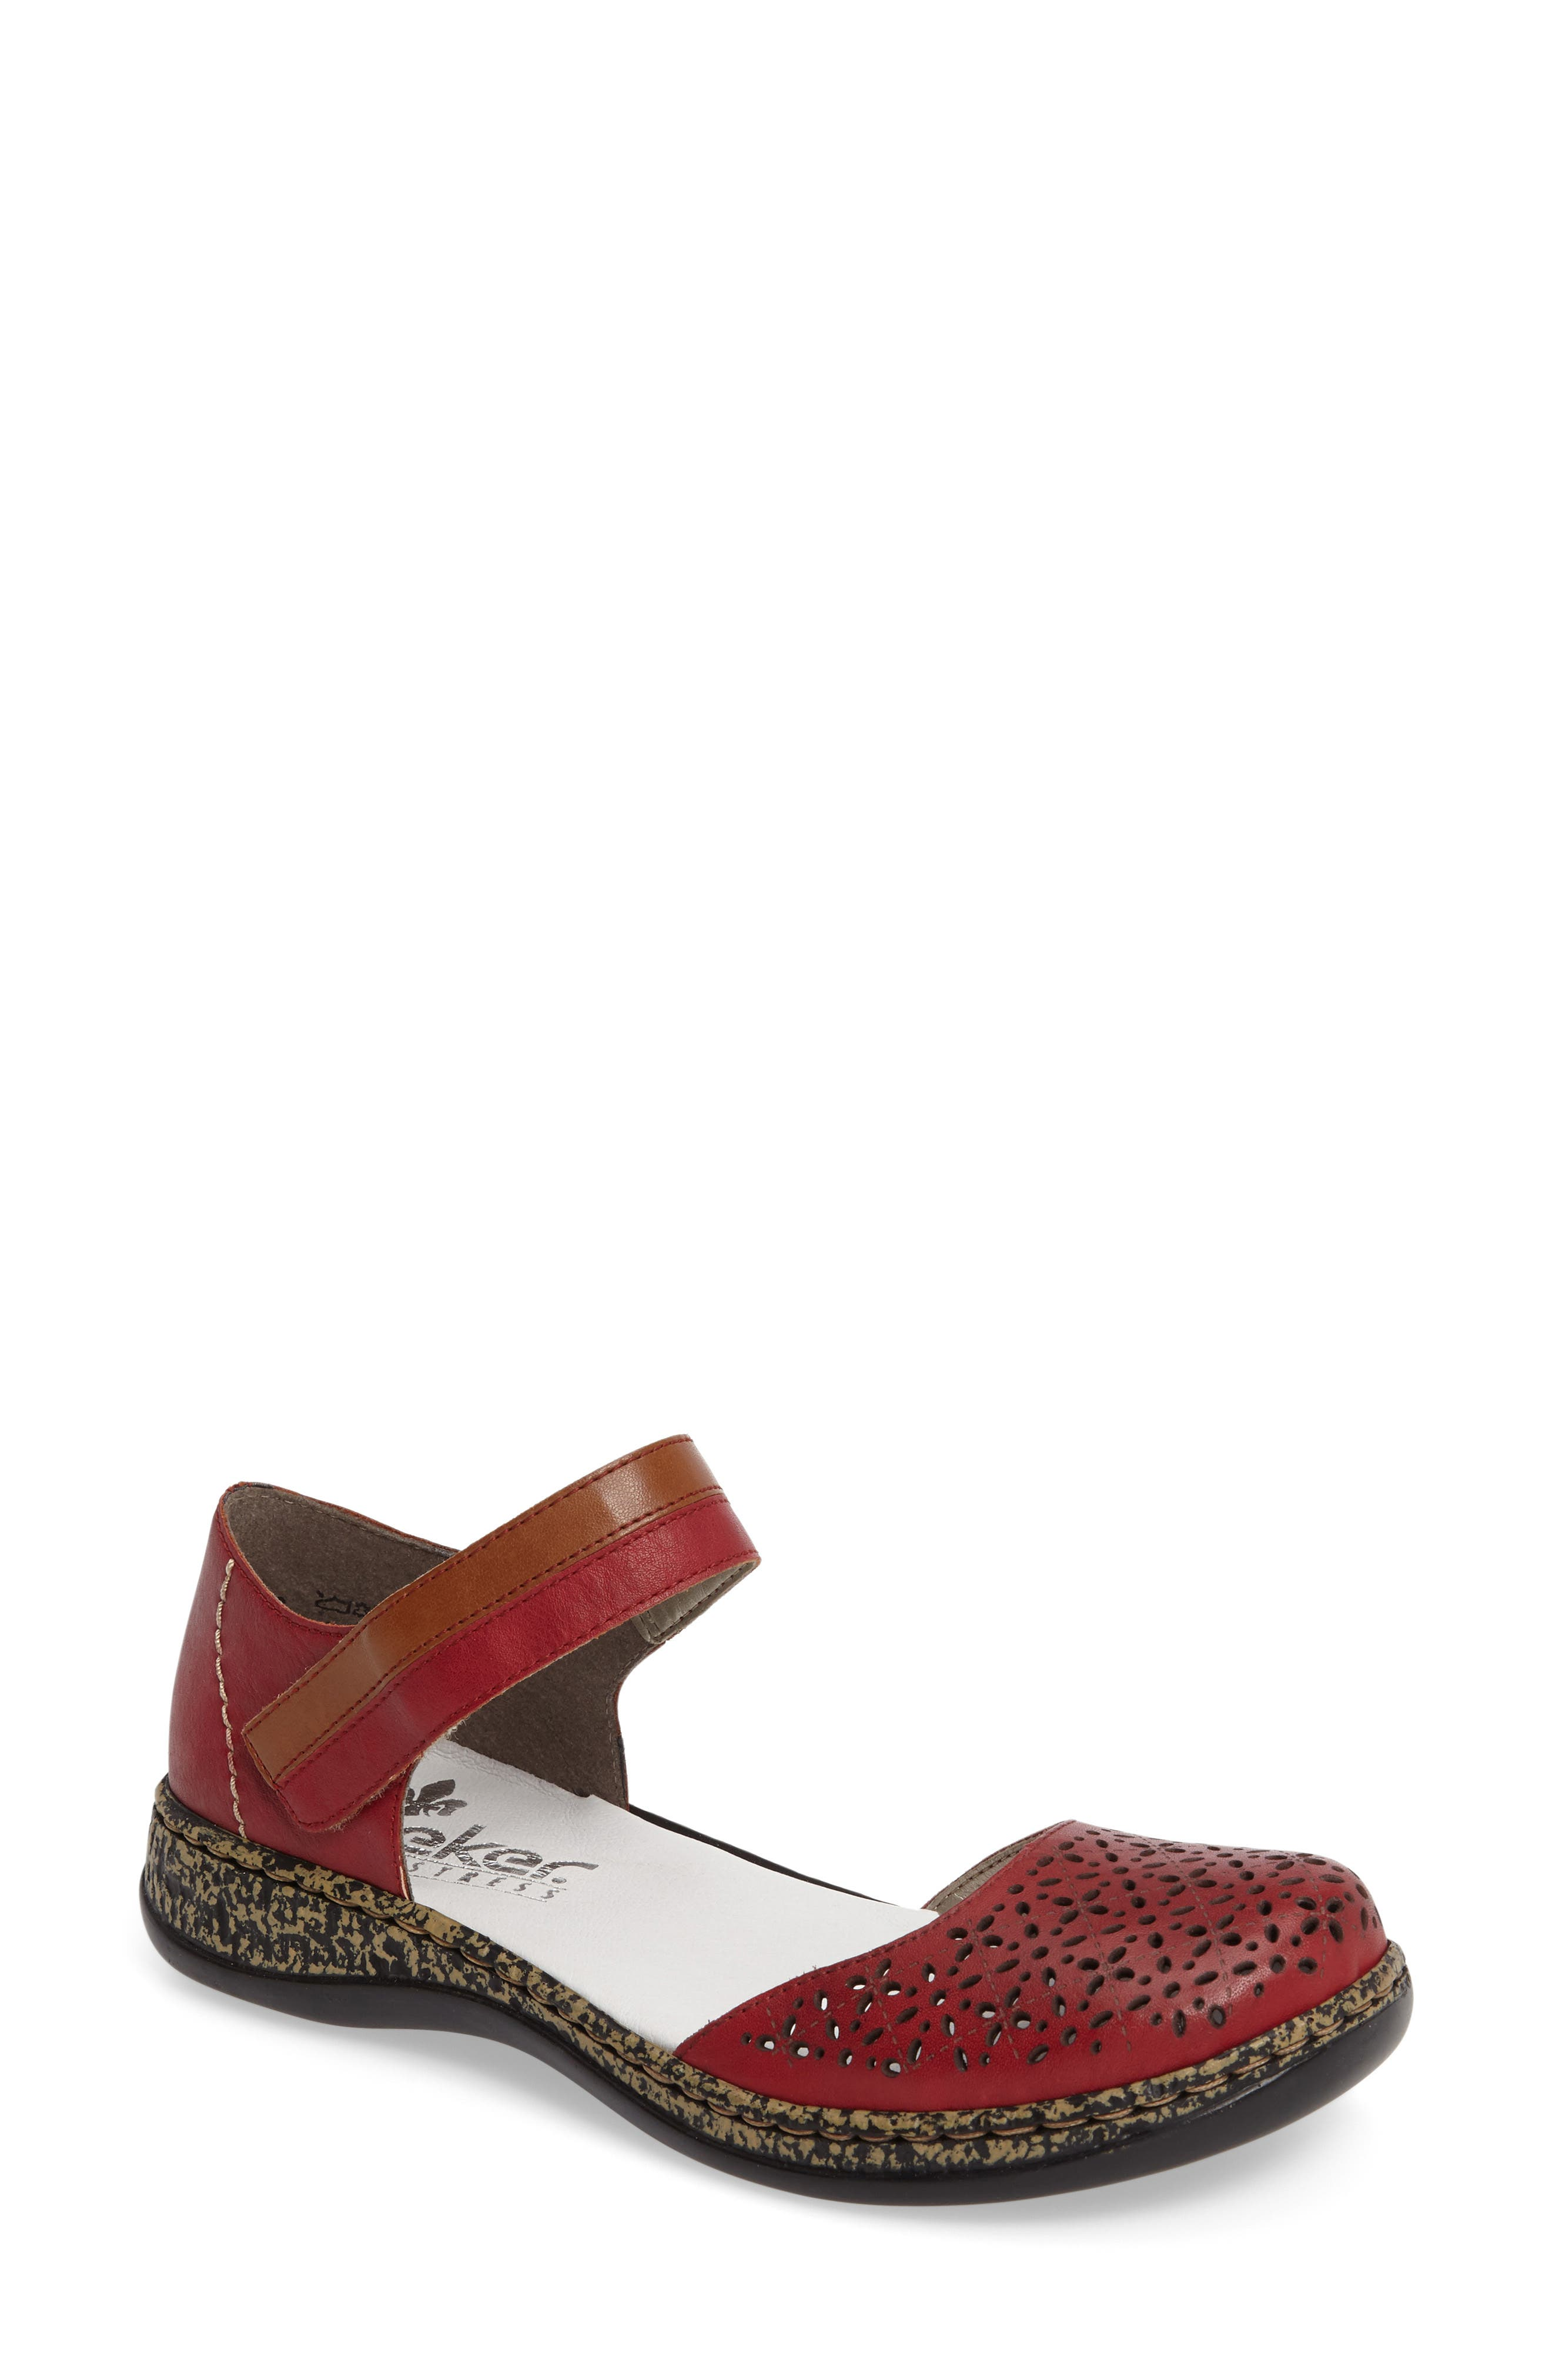 Daisy 10 Mary Jane Flat,                         Main,                         color, ROSSO LEATHER